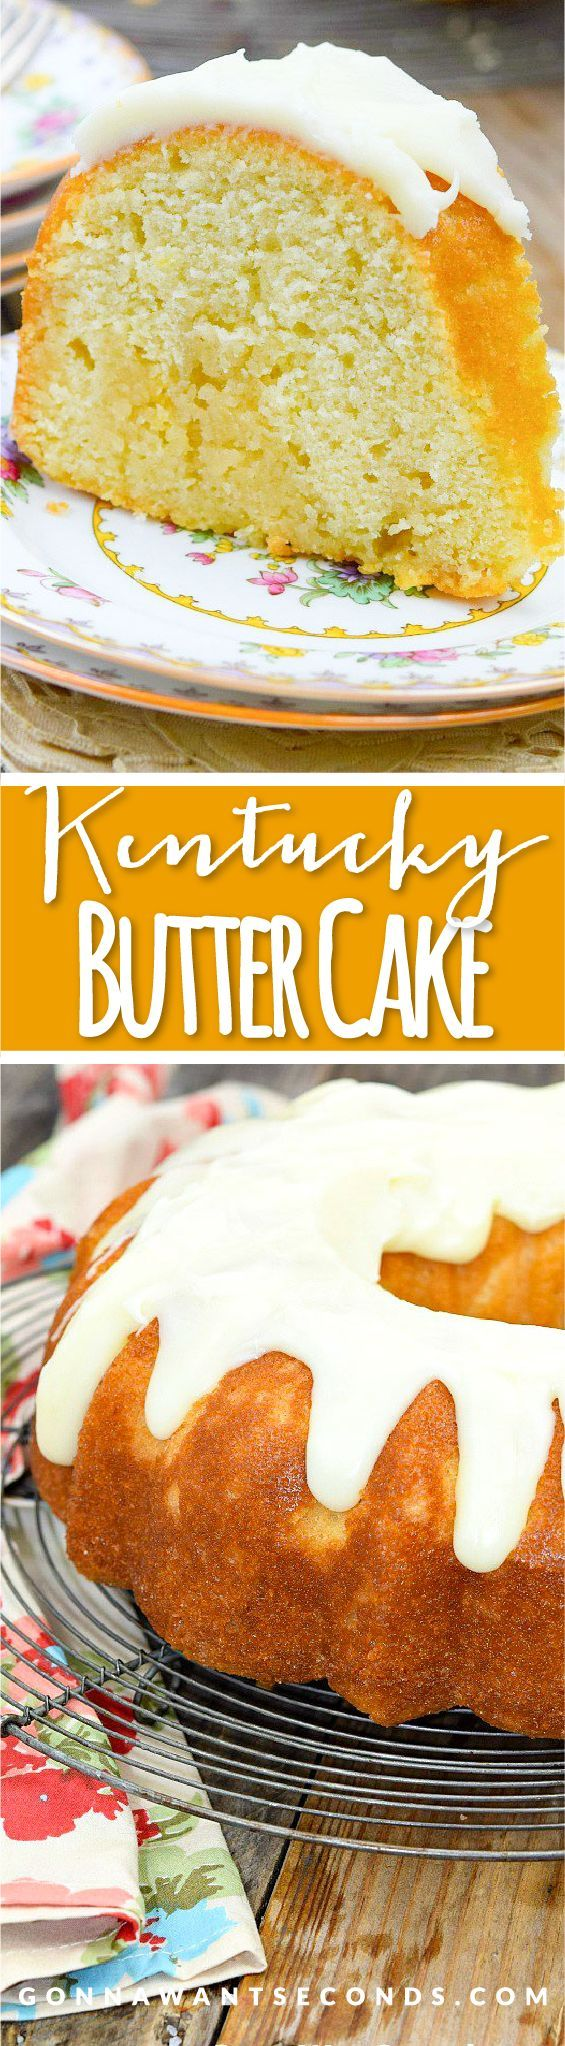 This unique Kentucky Butter Cake is tender, moist and deliciously unique. The cake is soaked with a wonderful Butter Sauce then topped in an amazing Butter Glaze.